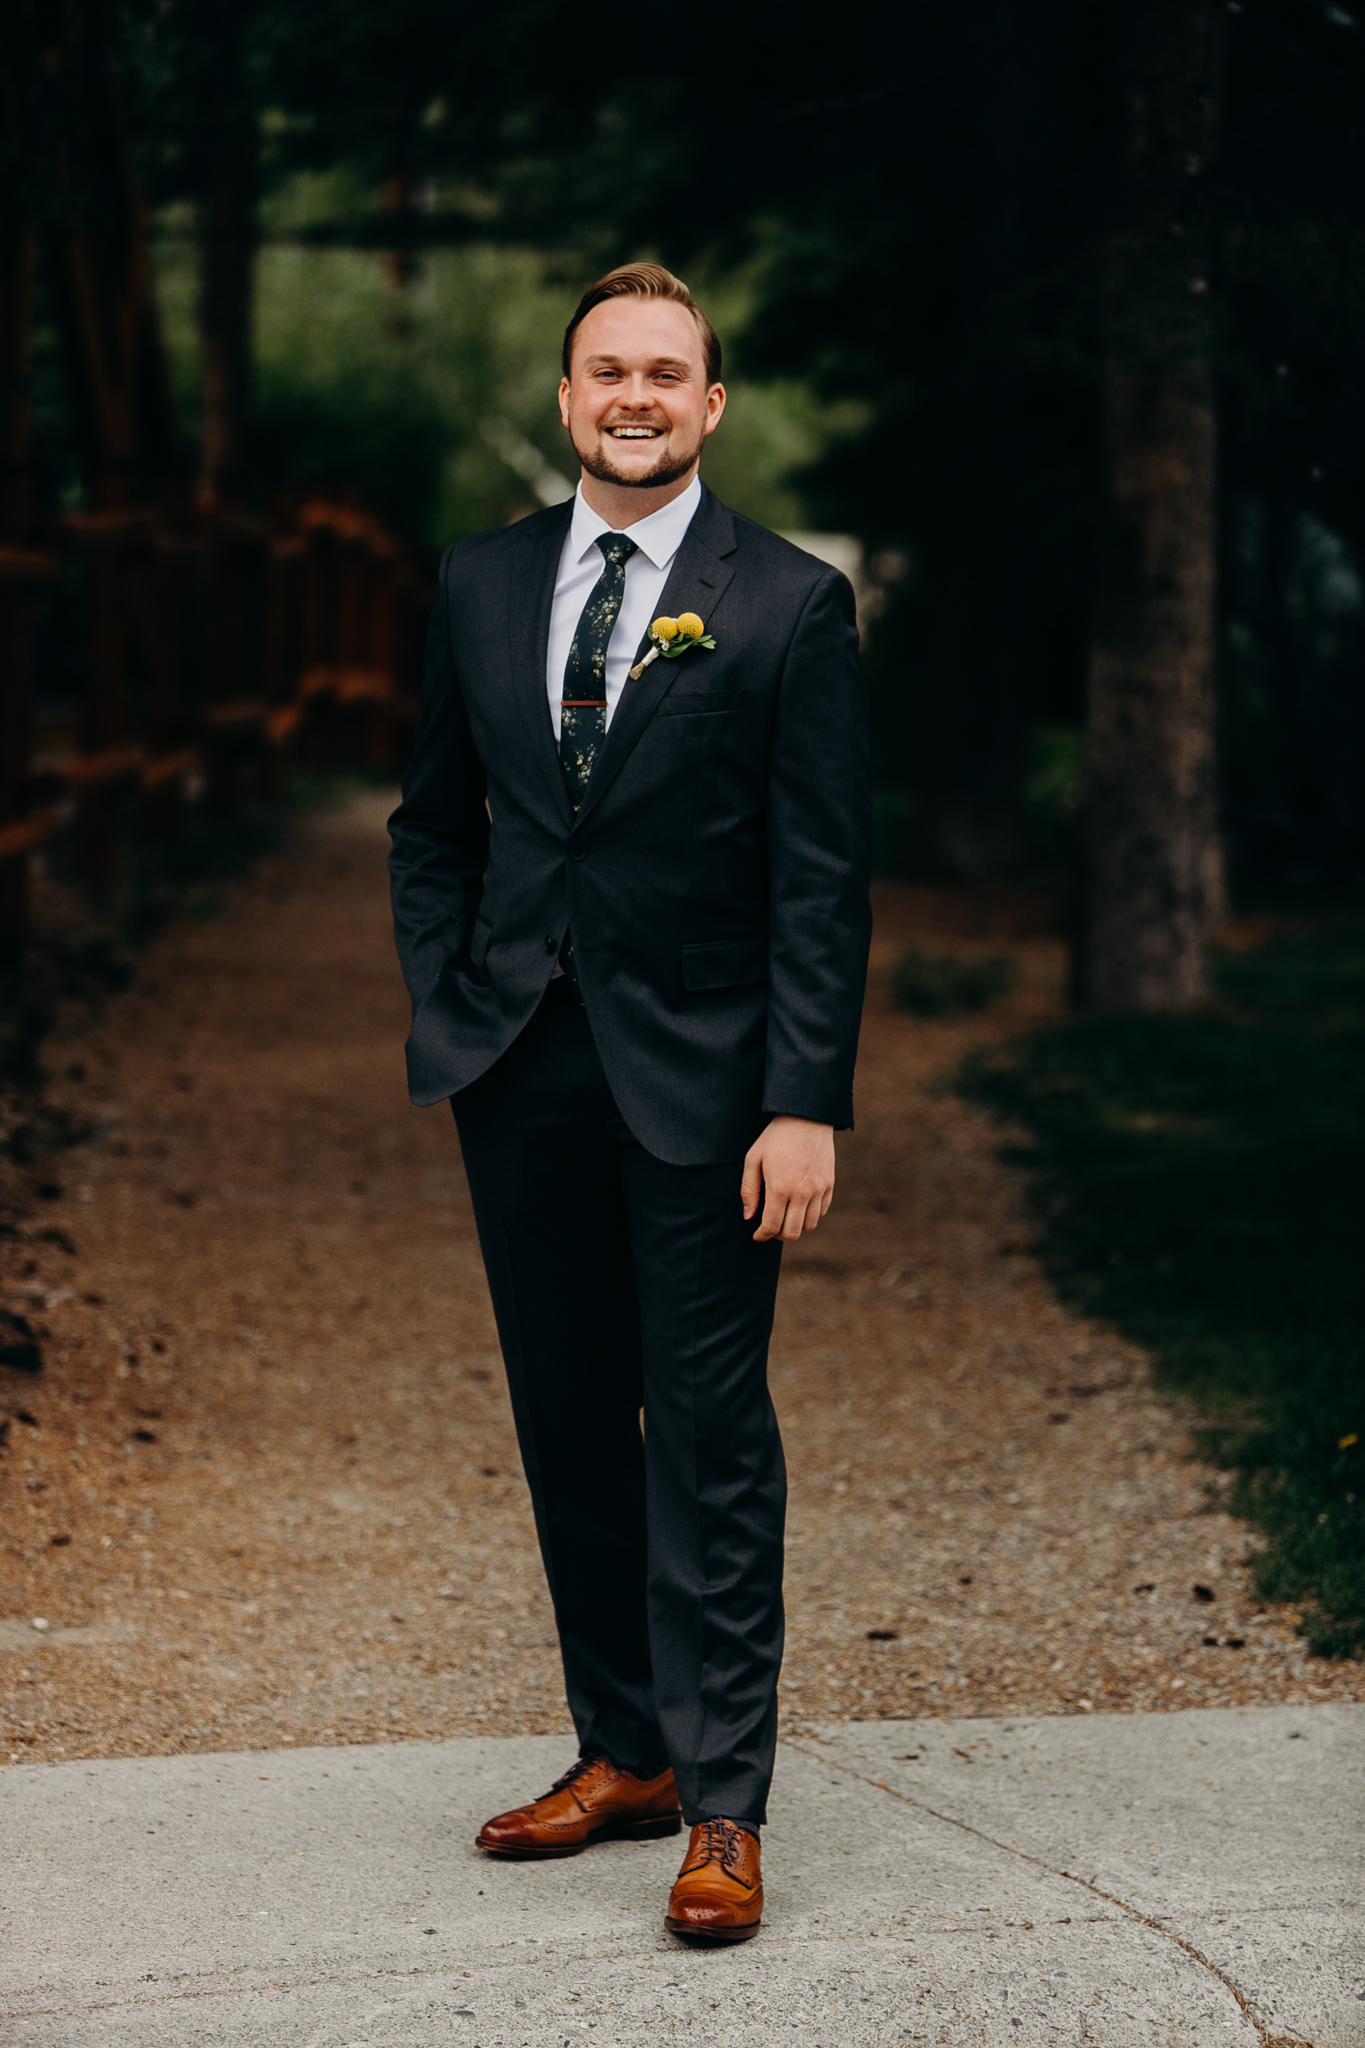 Portrait of smiling groom in suit and tie outdoors destination wedding canmore